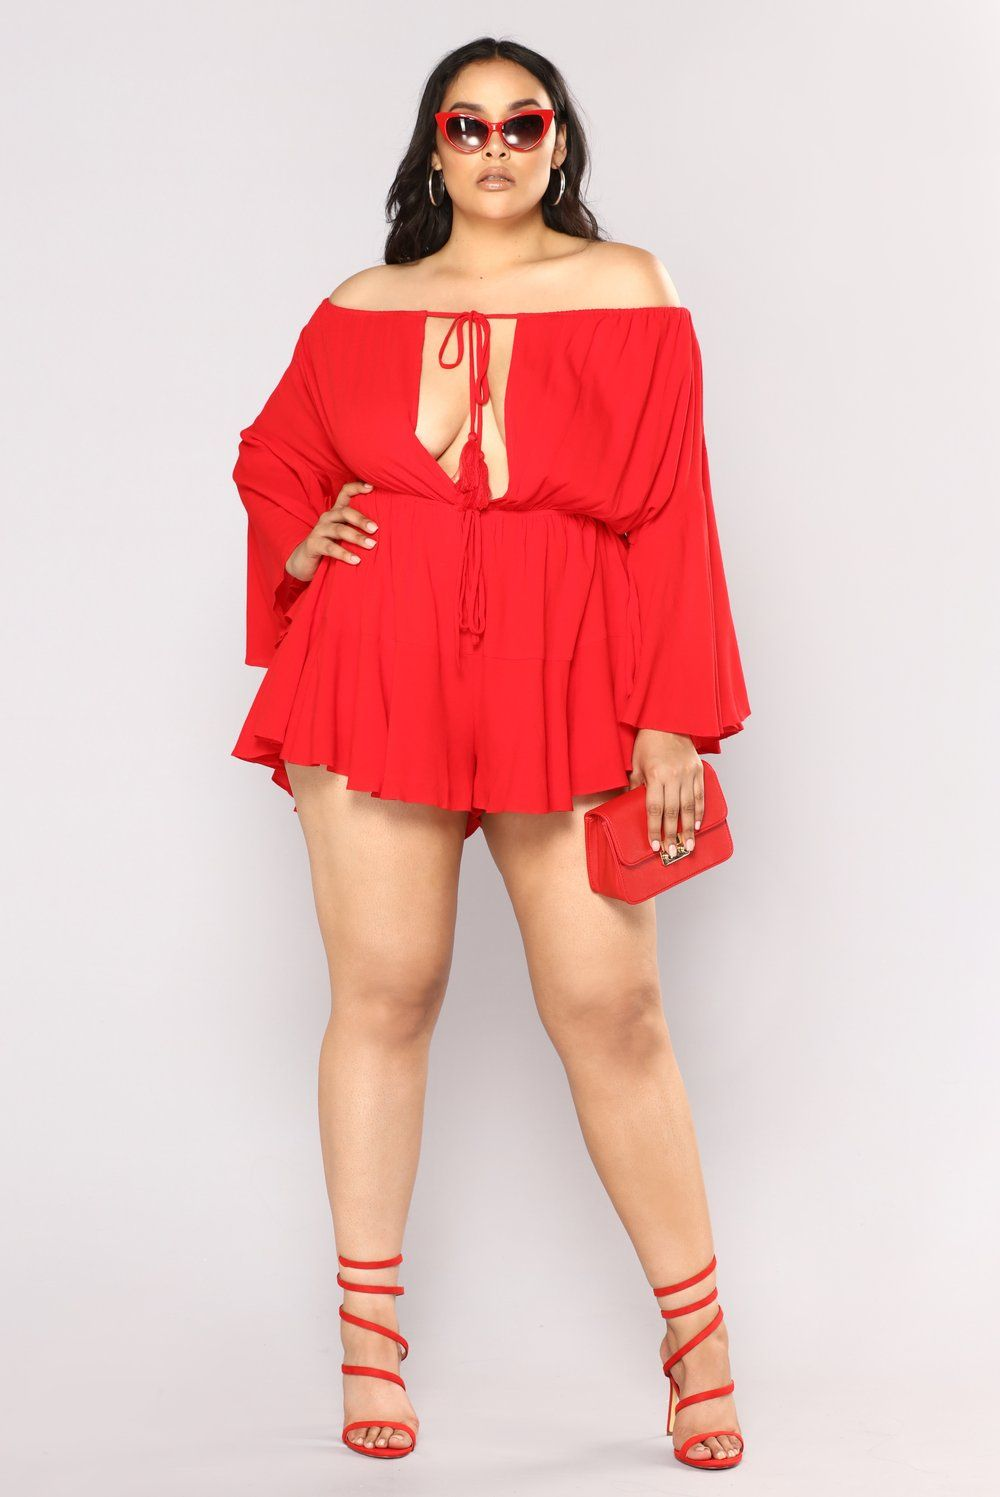 2d60433d25 plus-size. plus-size Fashion Nova Plus Size, Full Figure Fashion, Off  Shoulder Romper,